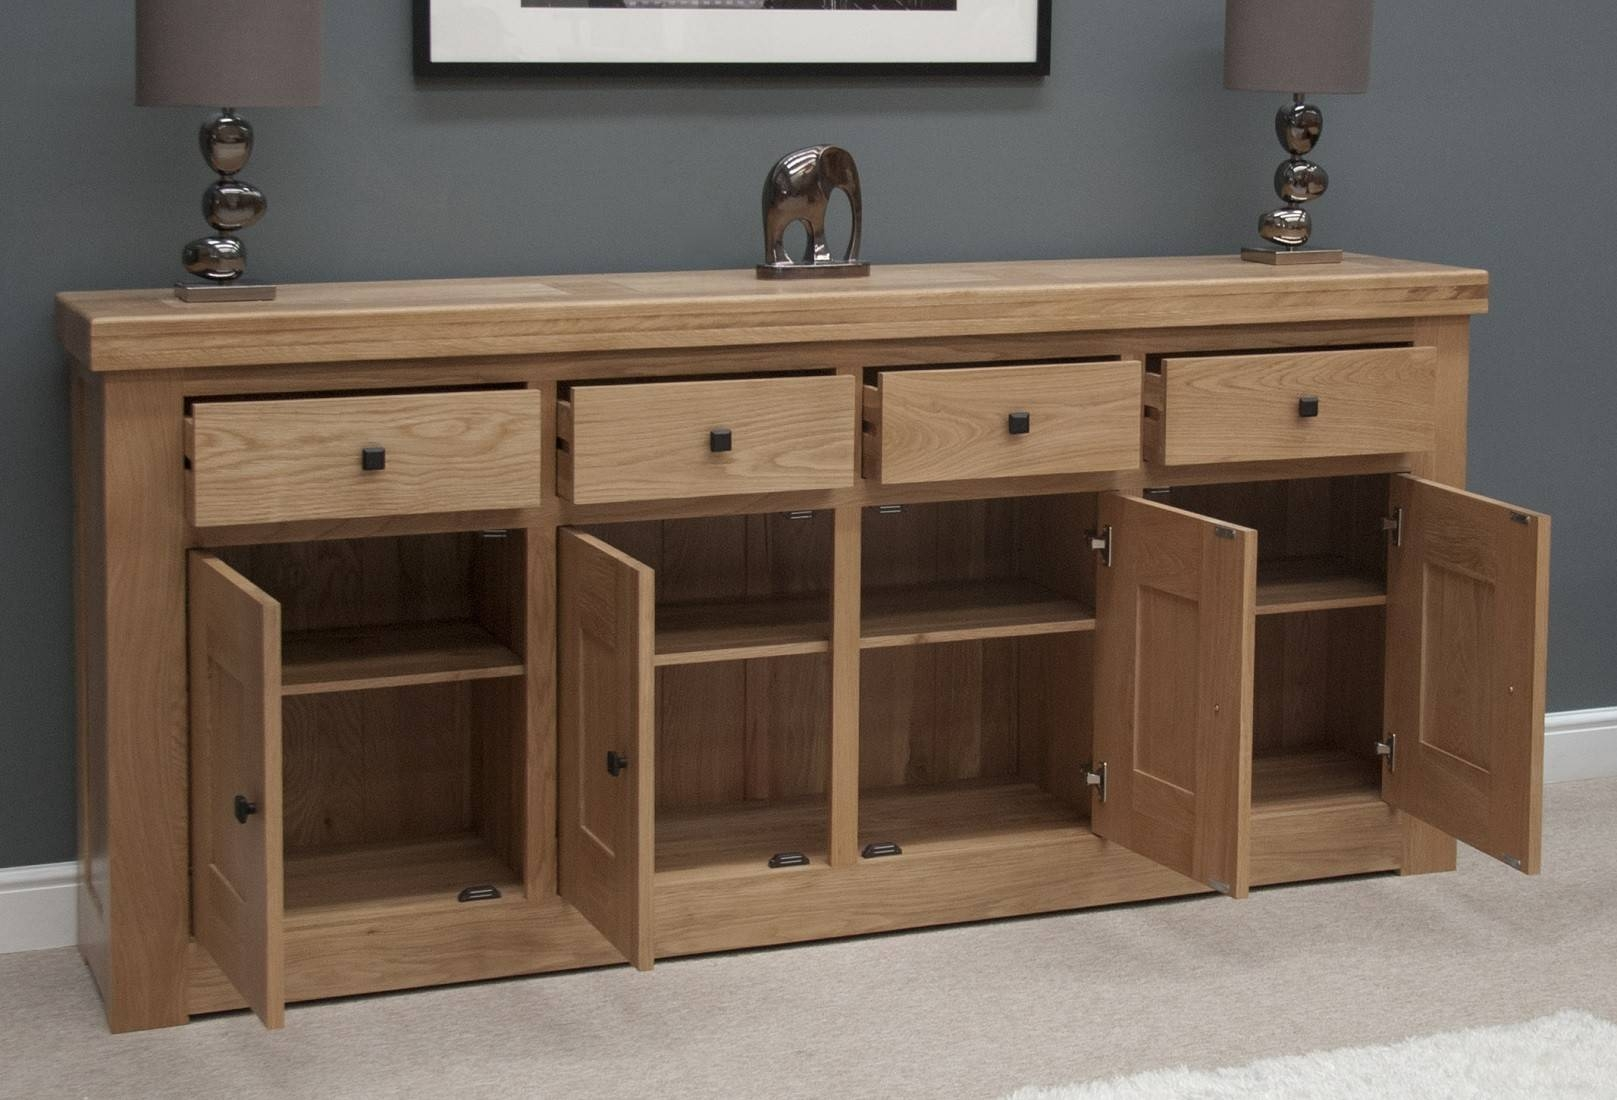 French Bordeaux Oak Extra Large 4 Door Sideboard | Oak Furniture Uk for Oak Sideboards for Sale (Image 7 of 30)